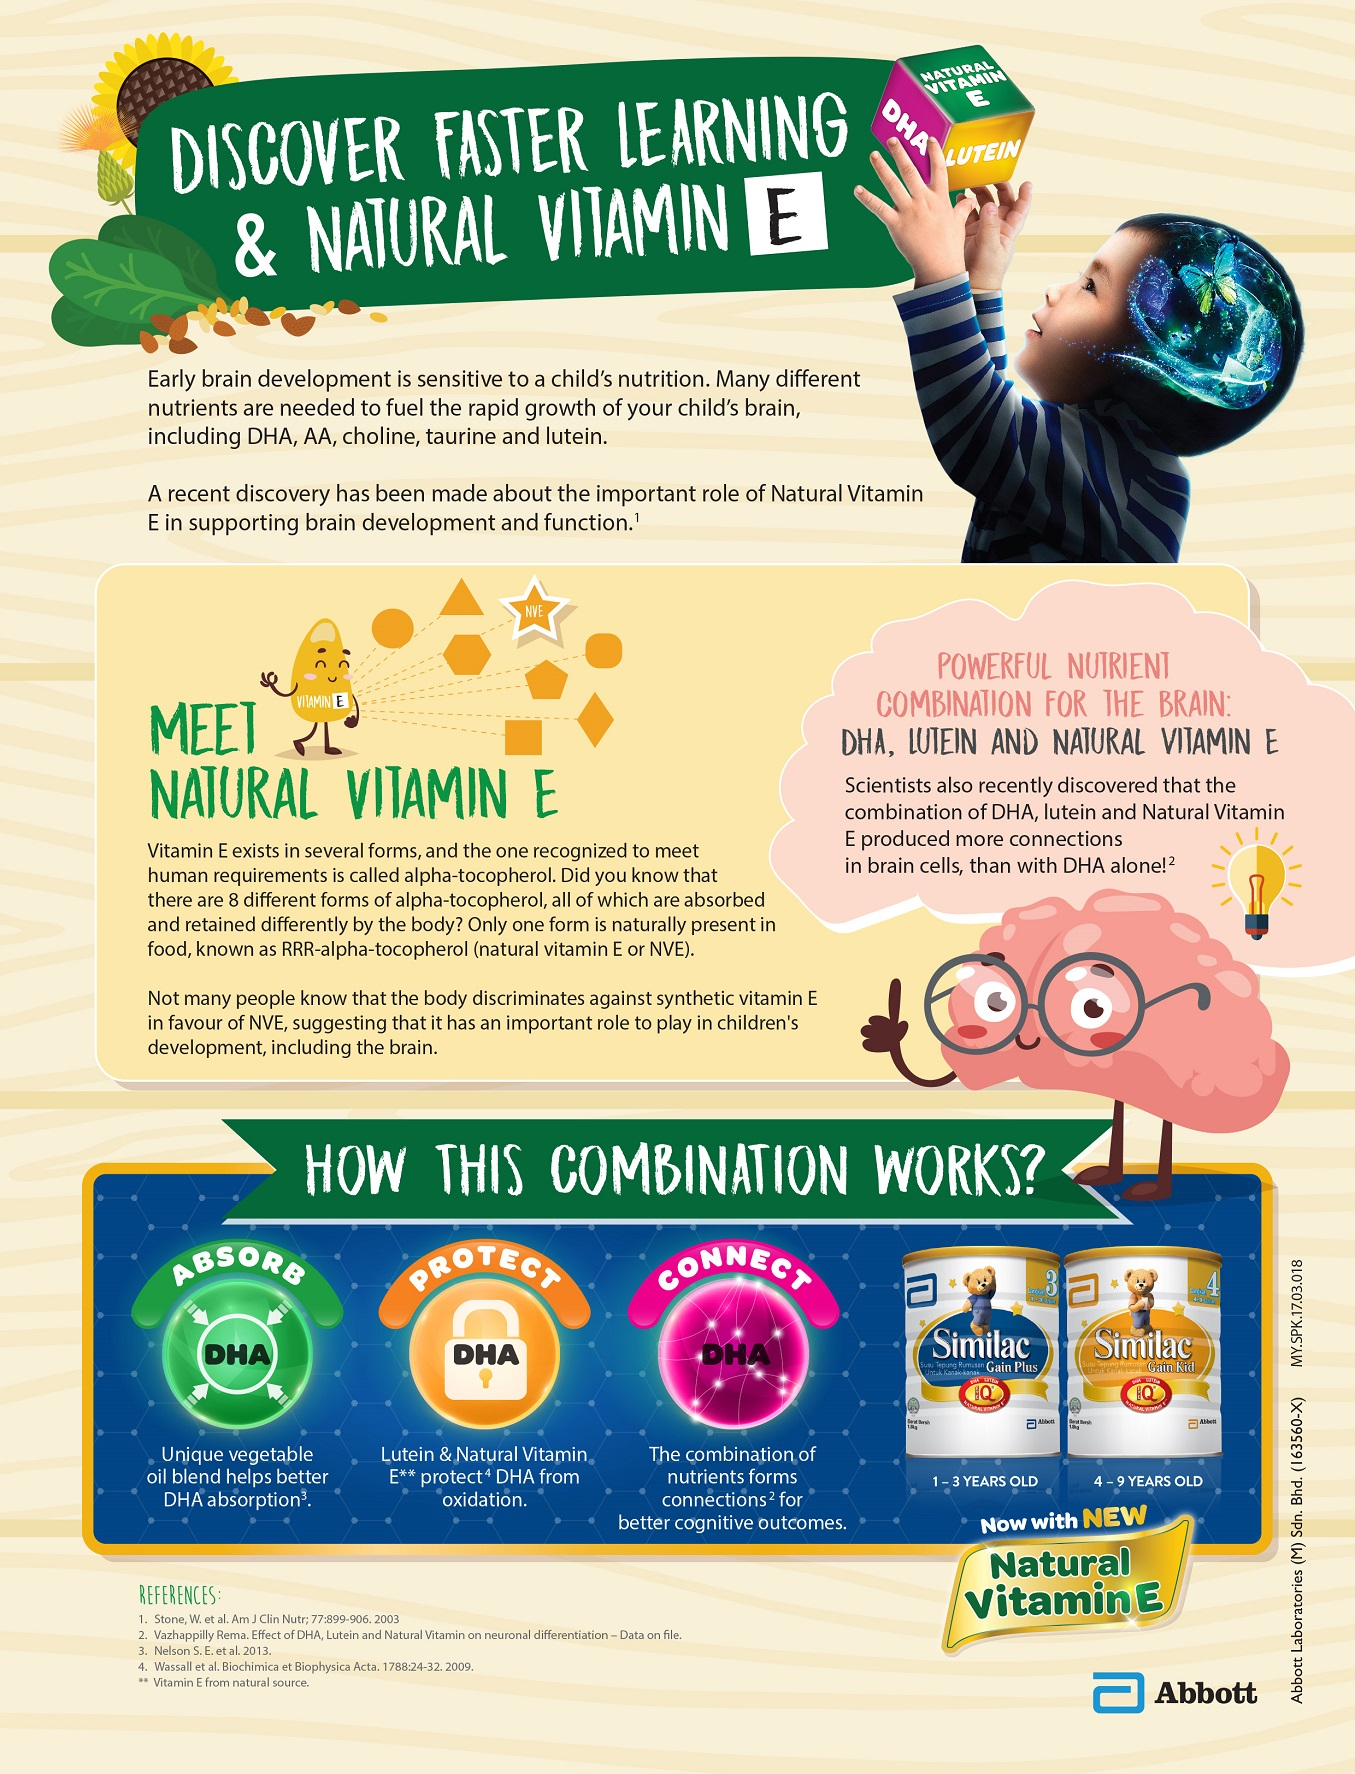 Discover Fast Learning and Vitamin E